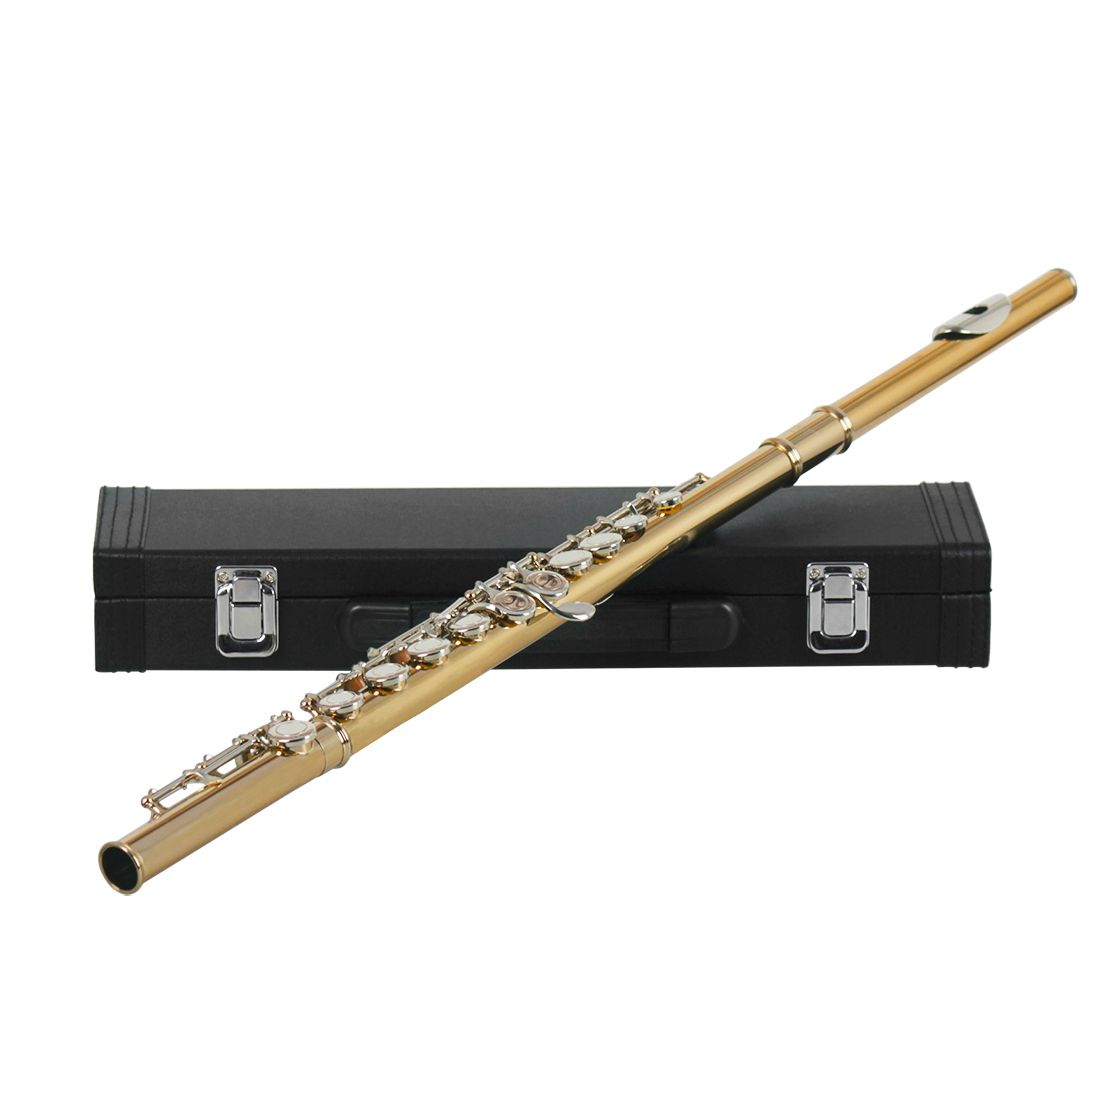 Western Concert Flute 16 Holes C Key Cupronickel Musical Instrument with Cleaning Cloth Stick Gloves Screwdriver Gold MUSIC